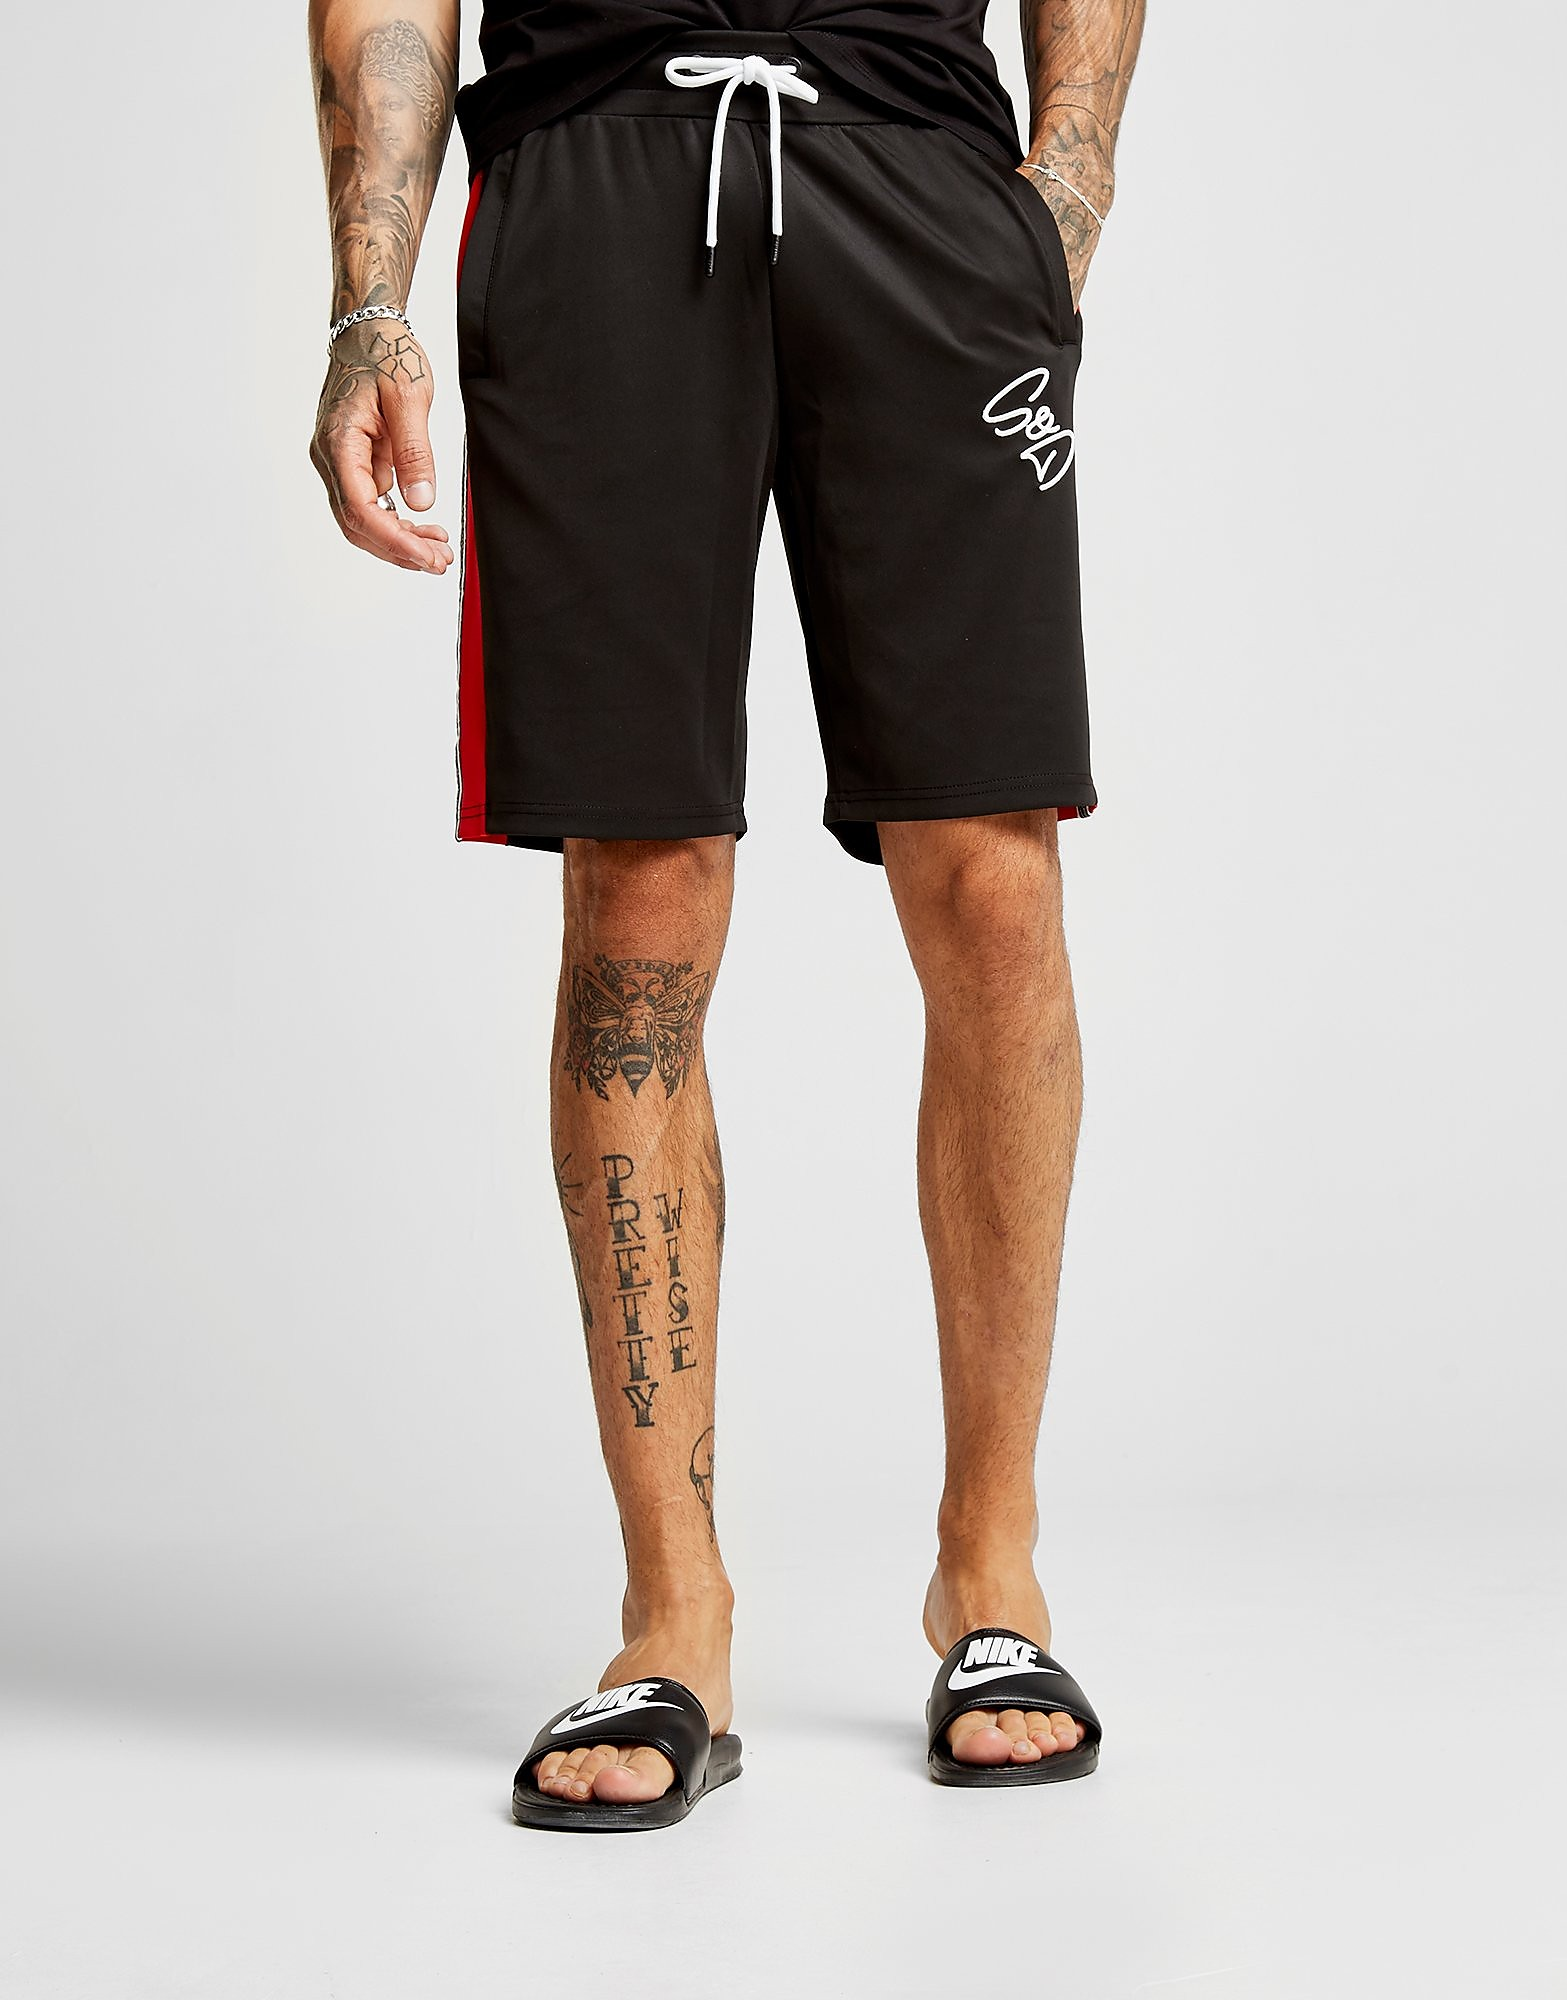 Supply & Demand Script Tape Shorts - Only at JD, Black